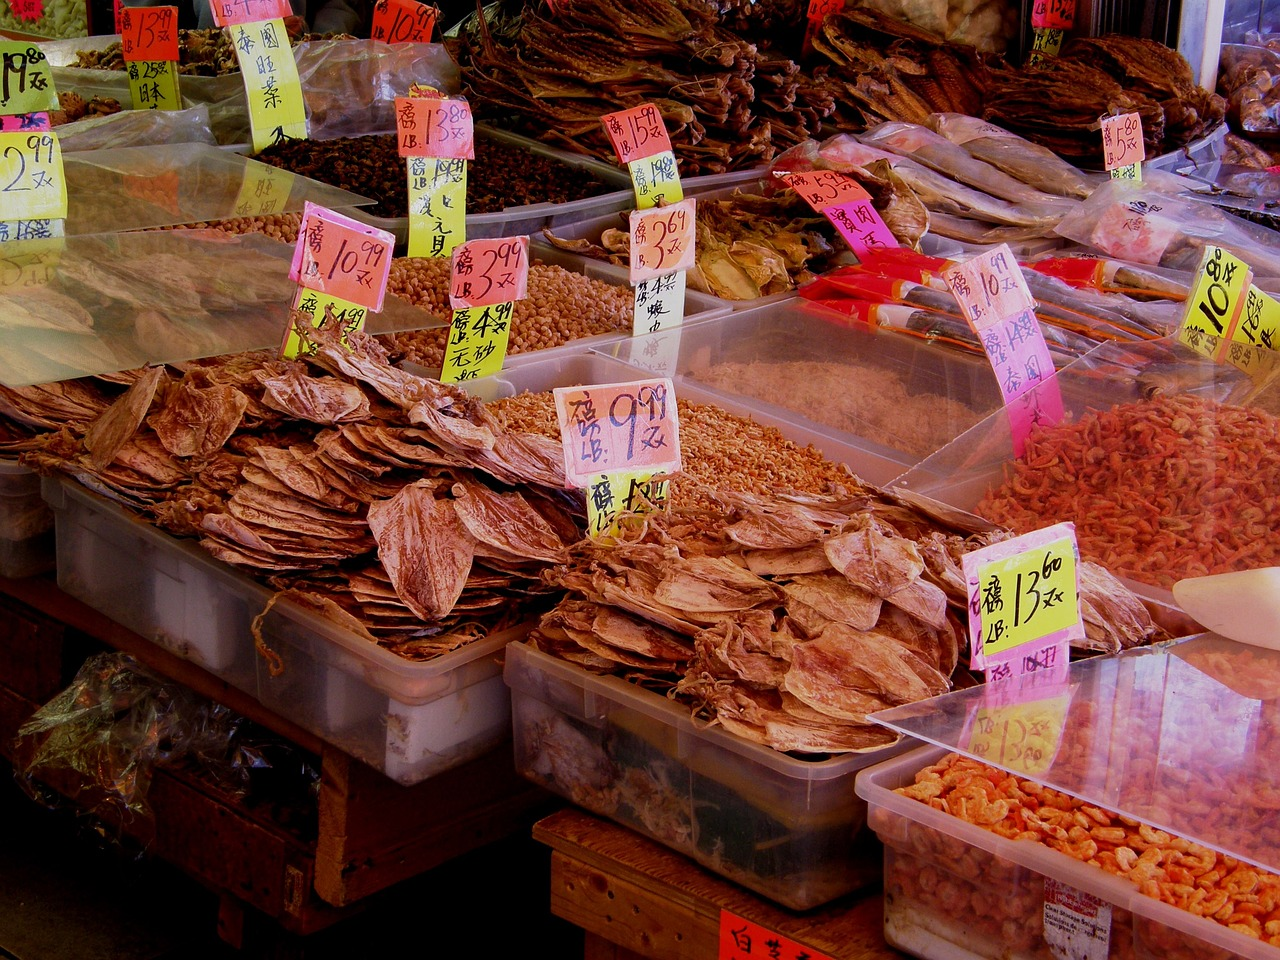 Image of a market in China